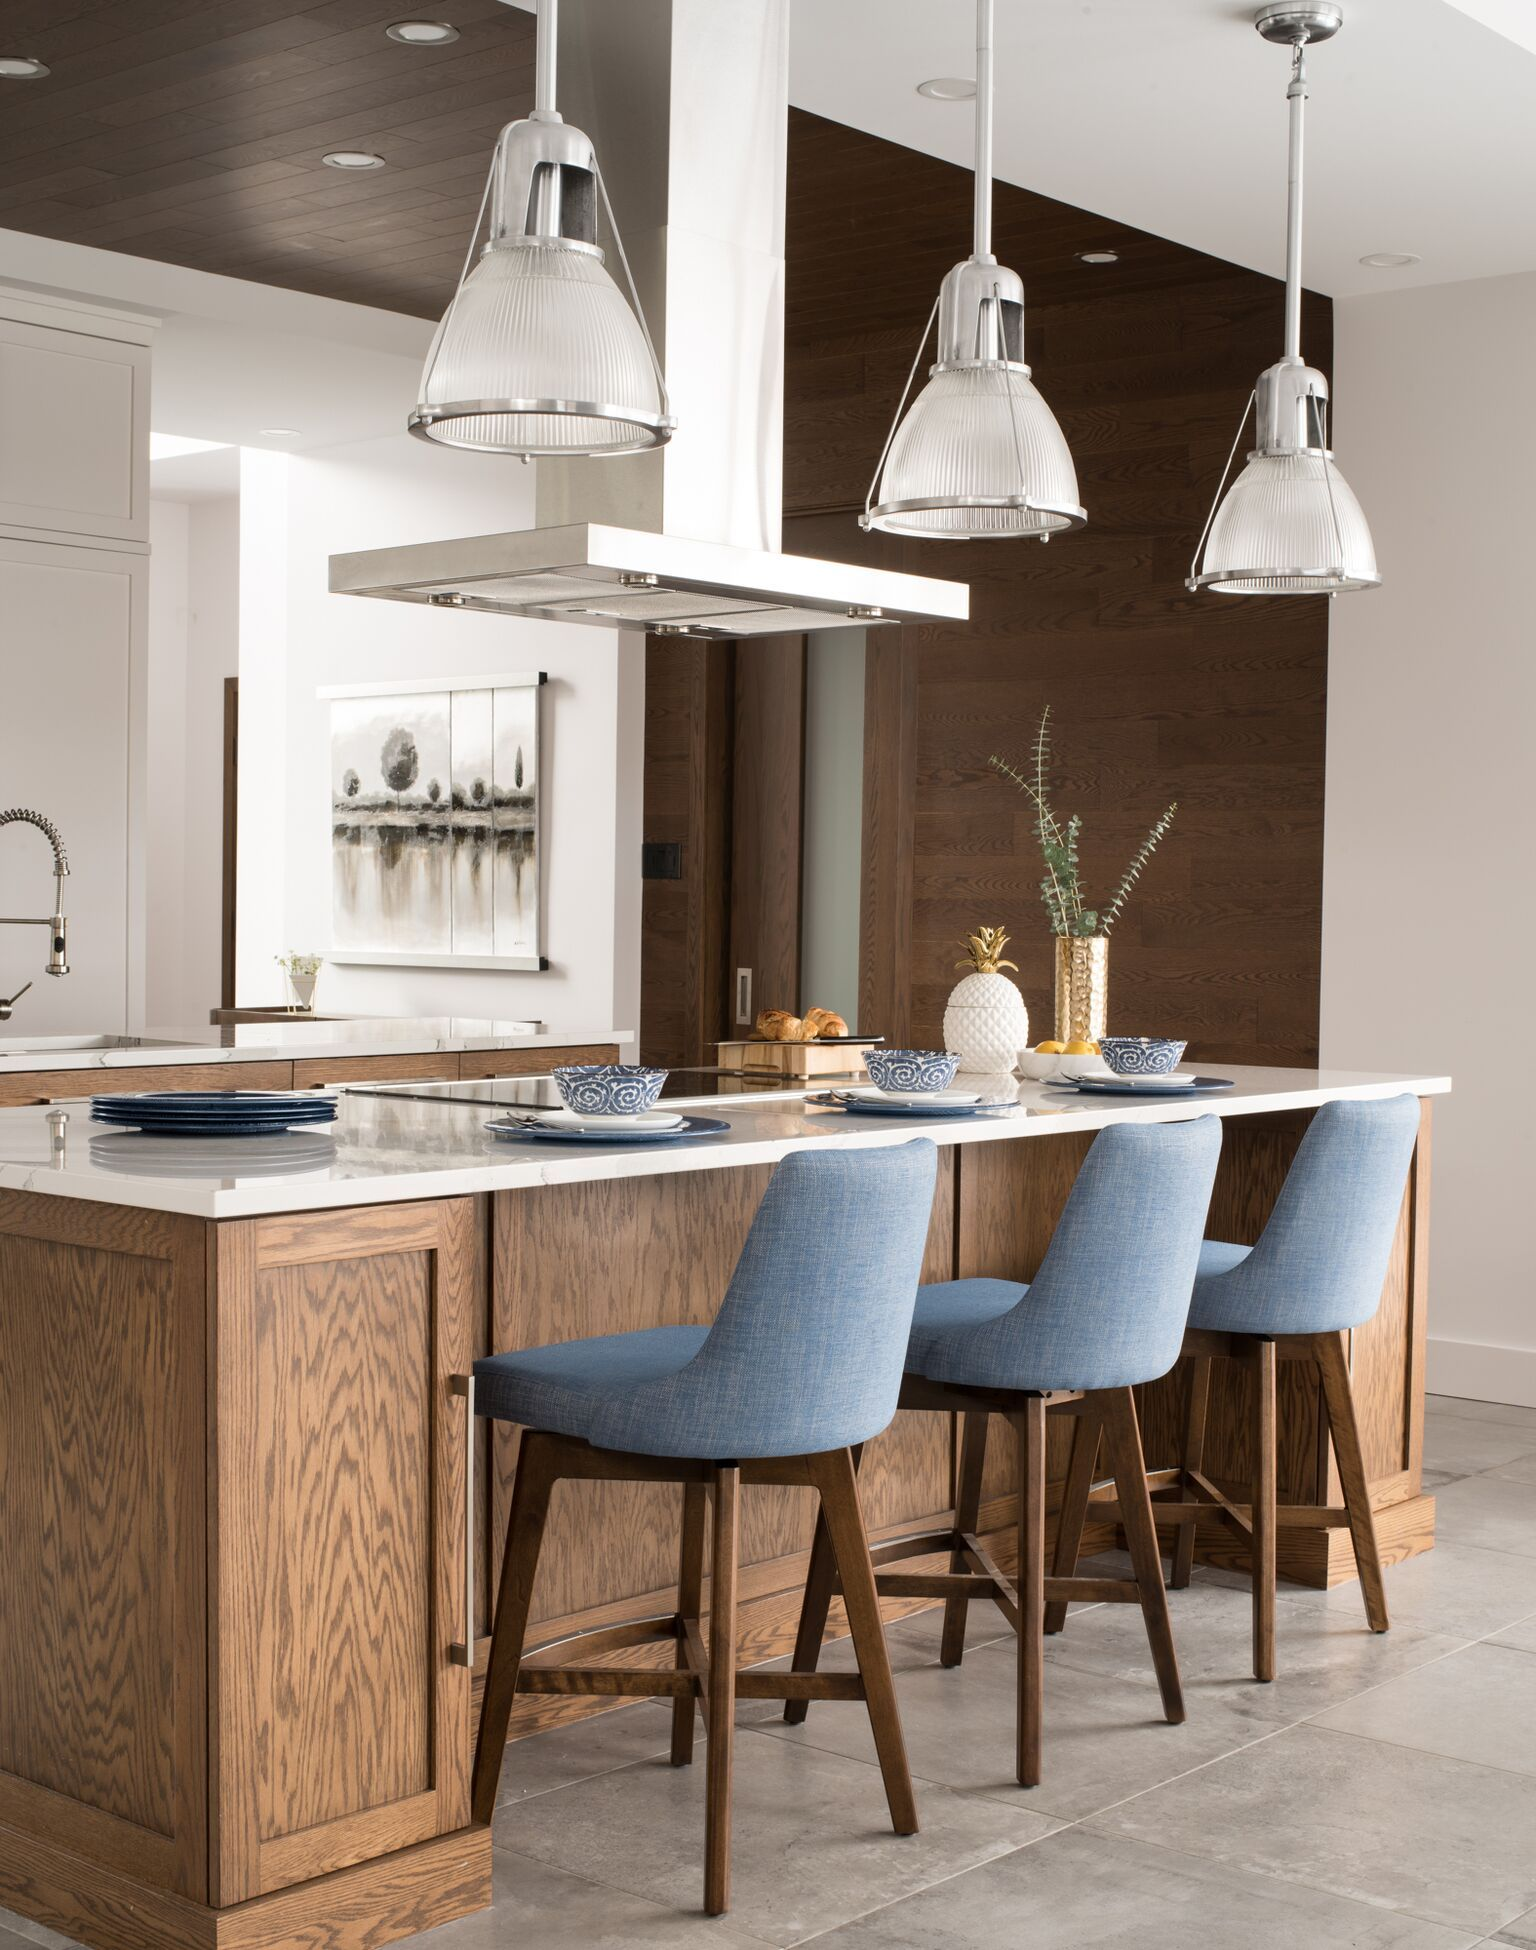 The Classic Lines And Elegant Details Of The Henning Swivel Bar Stool Are A Welcome Addition To Any Decor F Bar Stools With Backs Kitchen Bar Stools Bar Stools